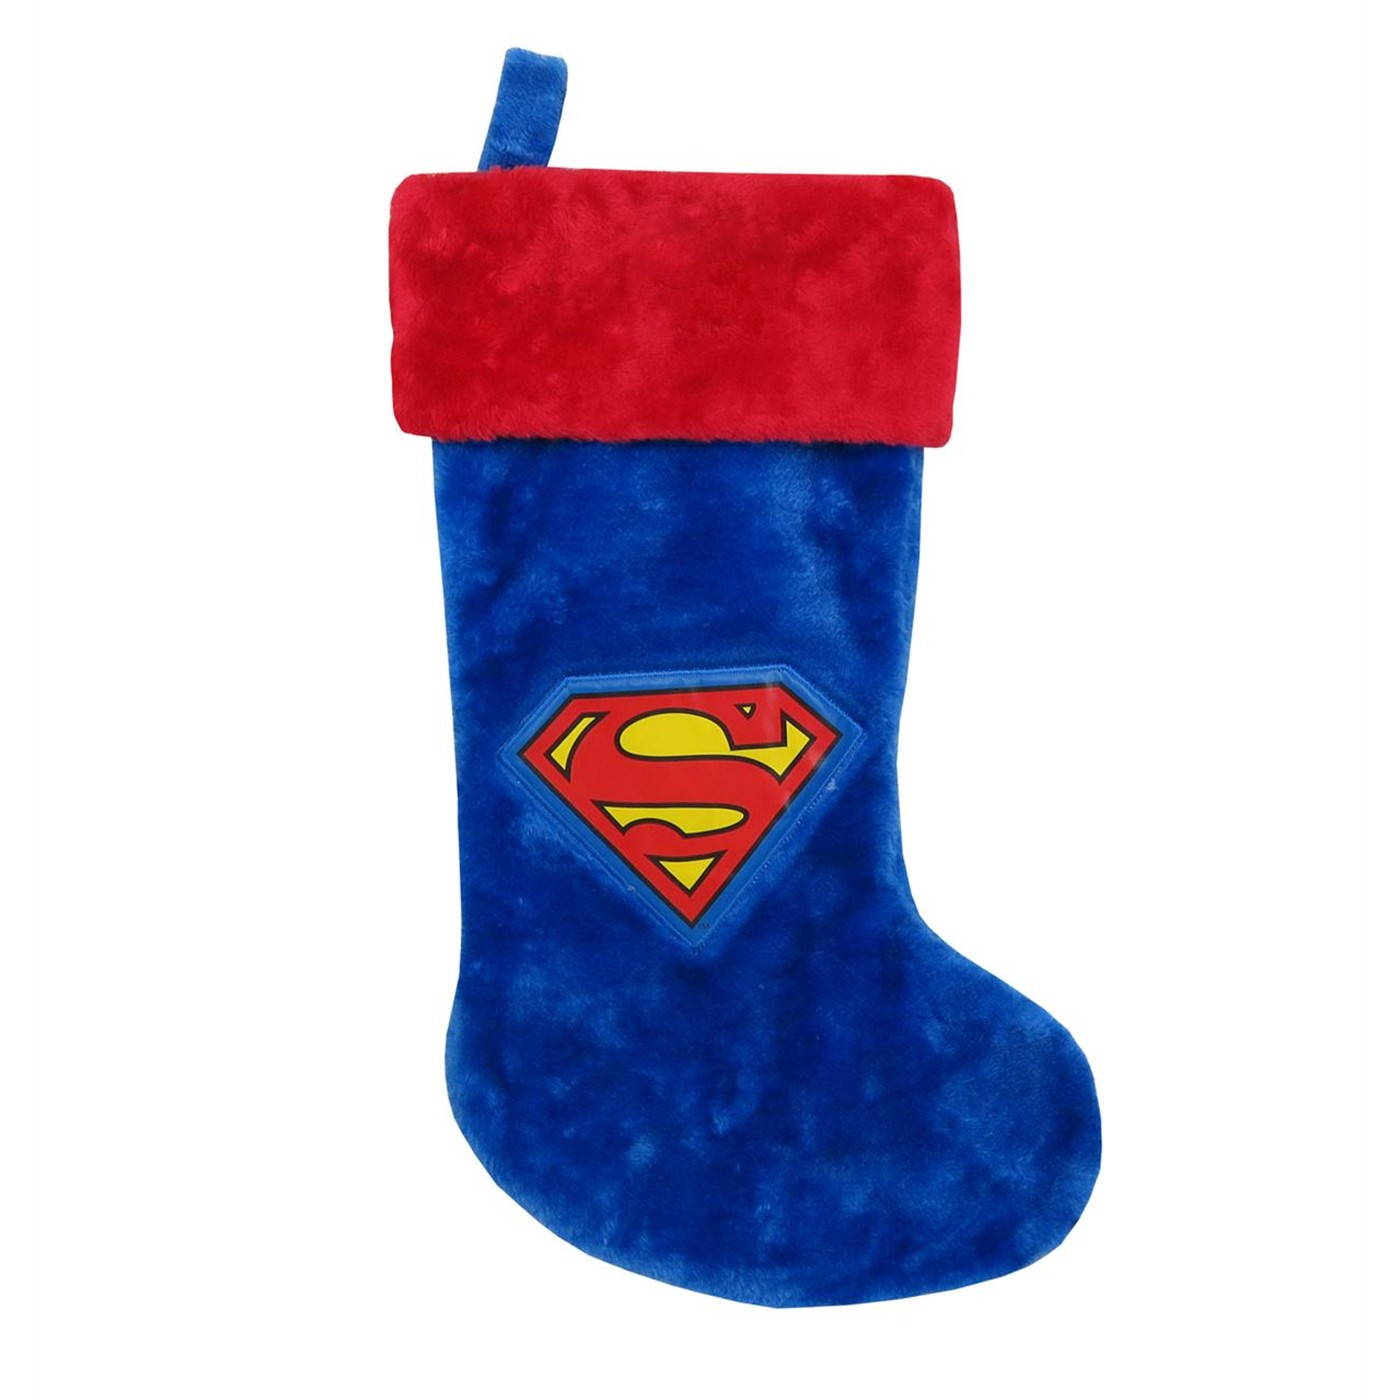 Decorazioni natalizie Superman